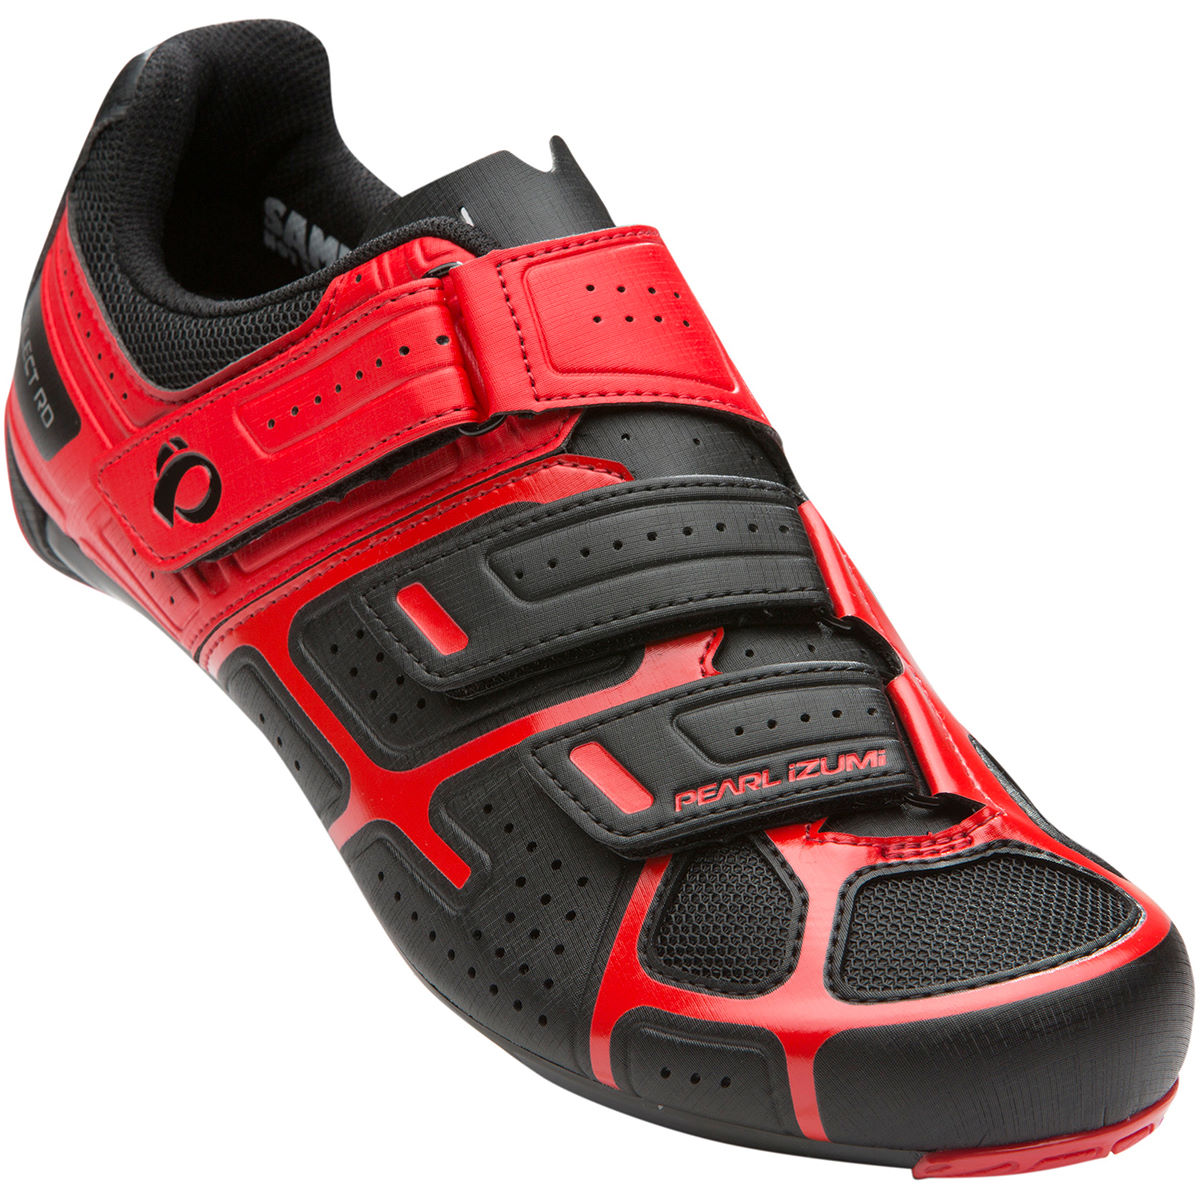 Chaussures de route Pearl Izumi Select RD IV - 45 Black/True Red